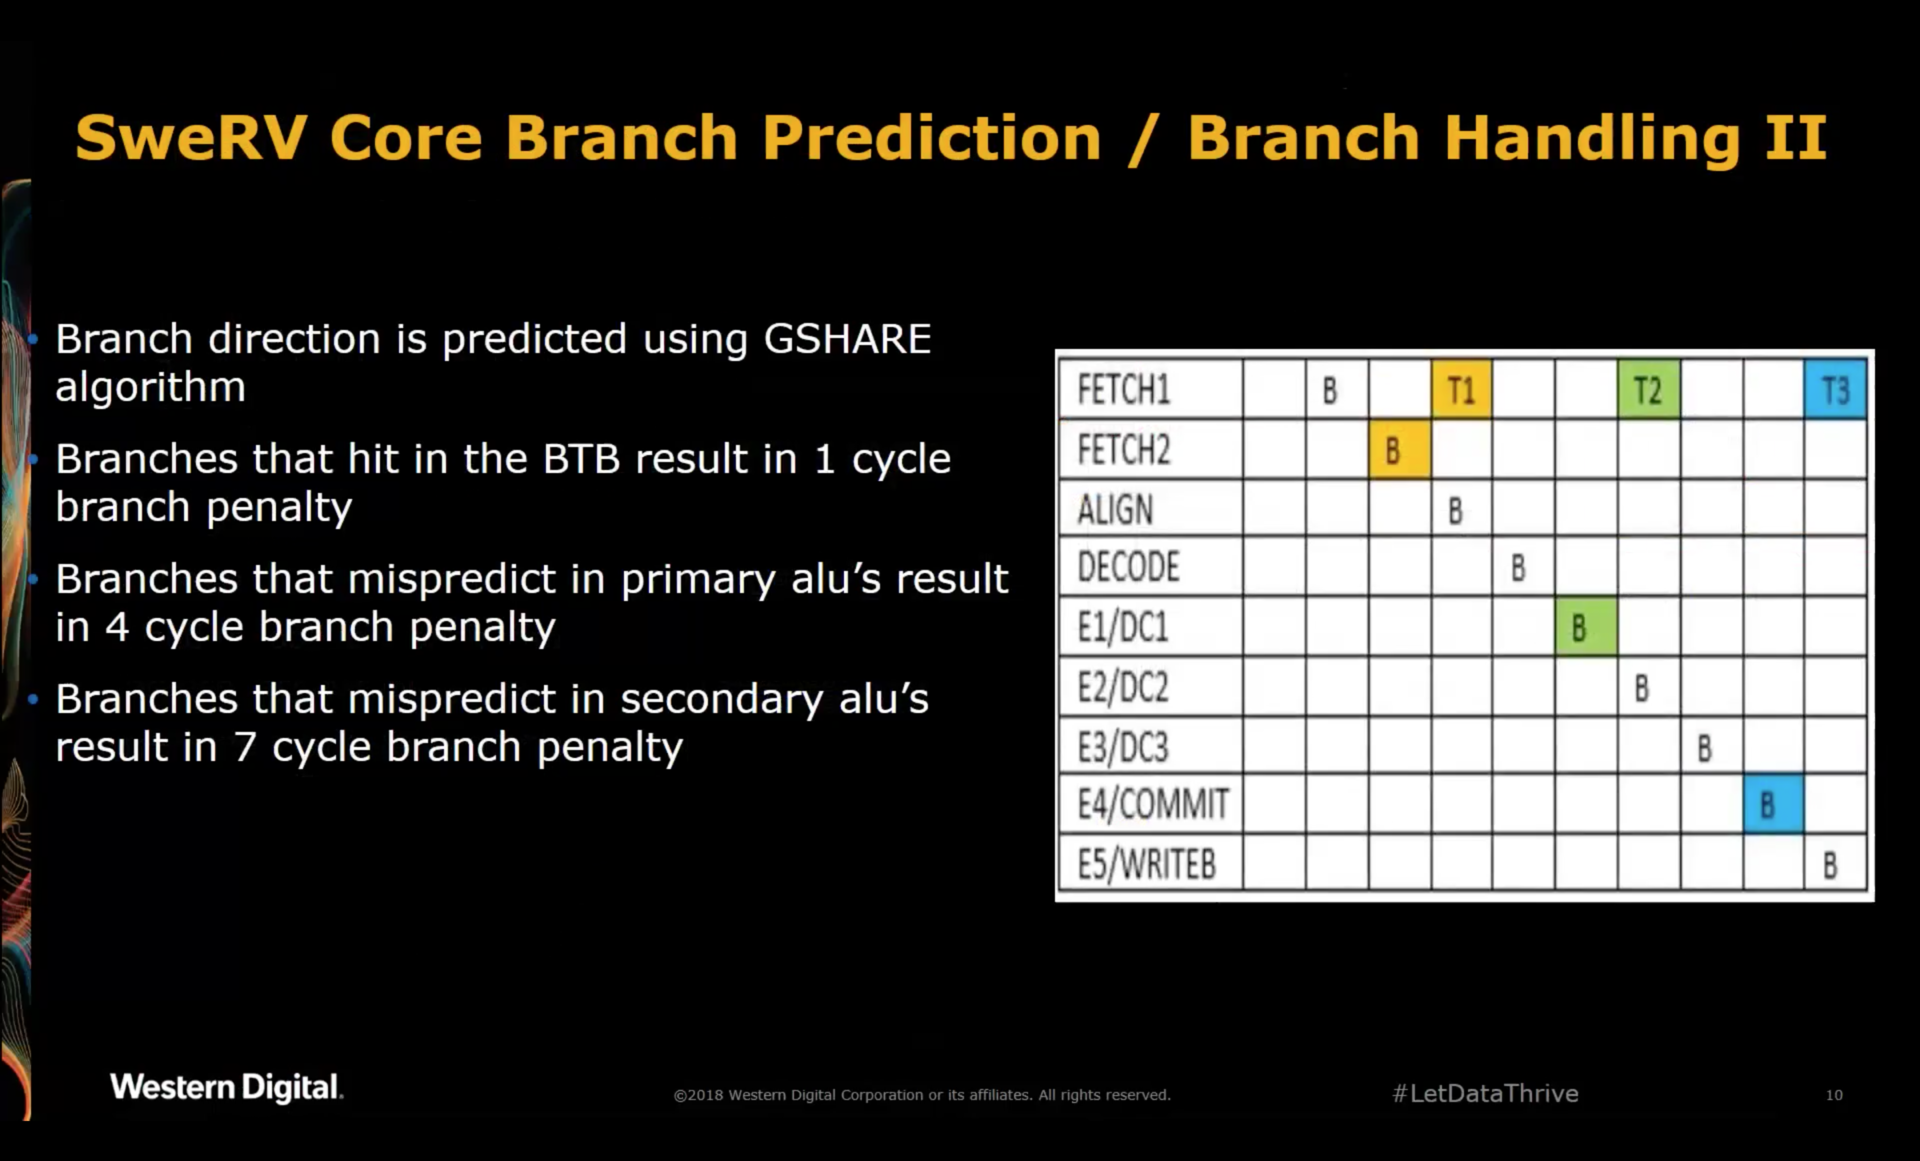 SweRV Core Branch Prediction and Handling 2